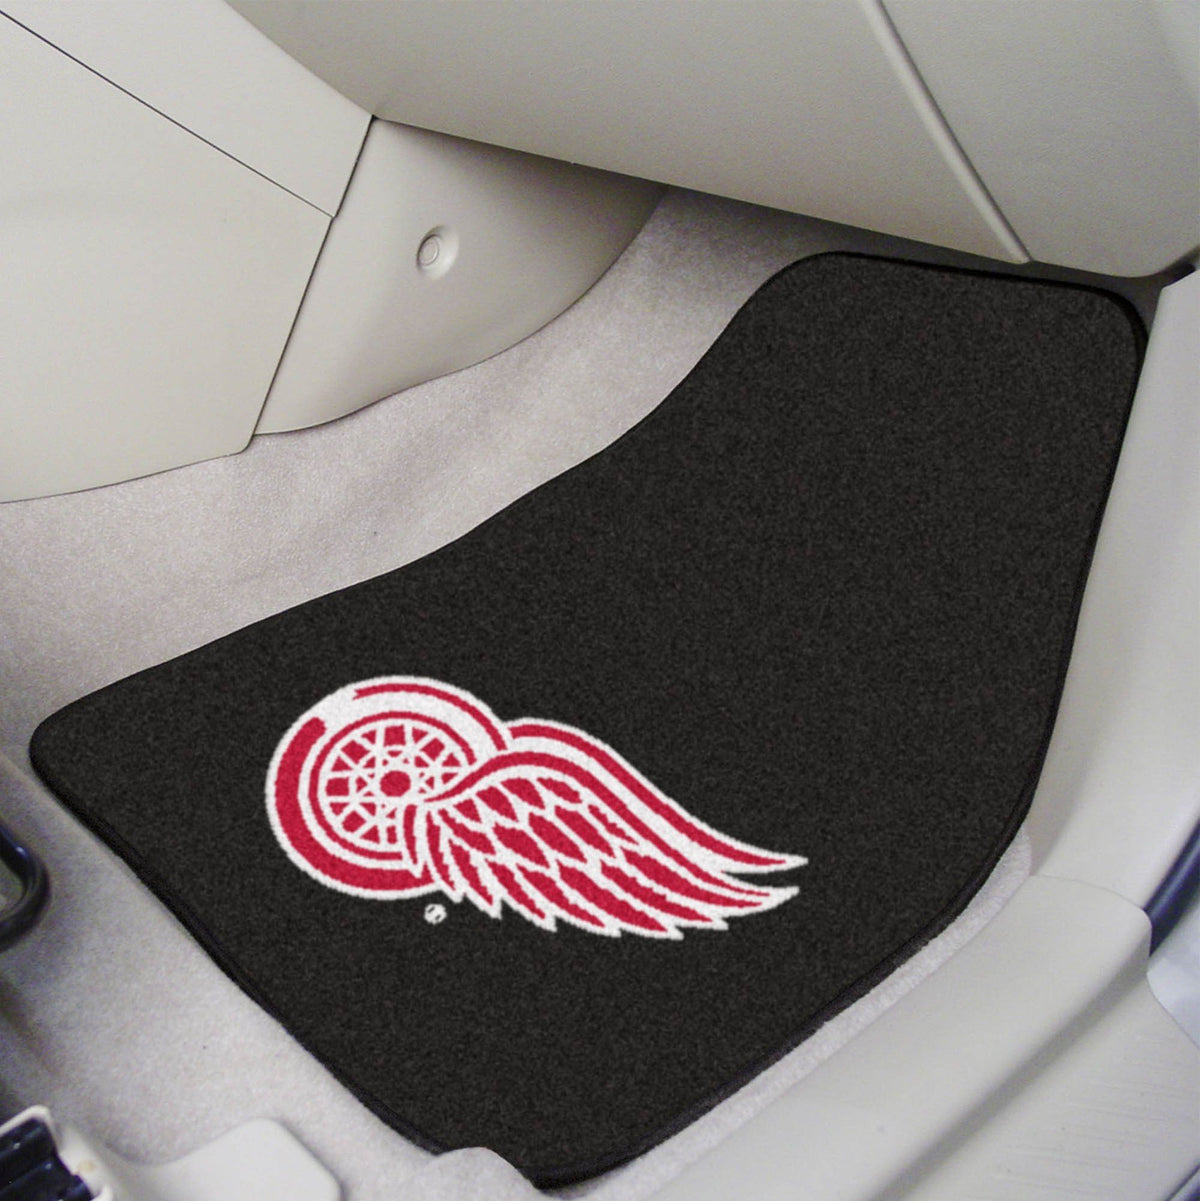 NHL - Carpet Car Mat, 2-Piece Set NHL Mats, Front Car Mats, 2-pc Carpet Car Mat Set, NHL, Auto Fan Mats Detroit Red Wings 2